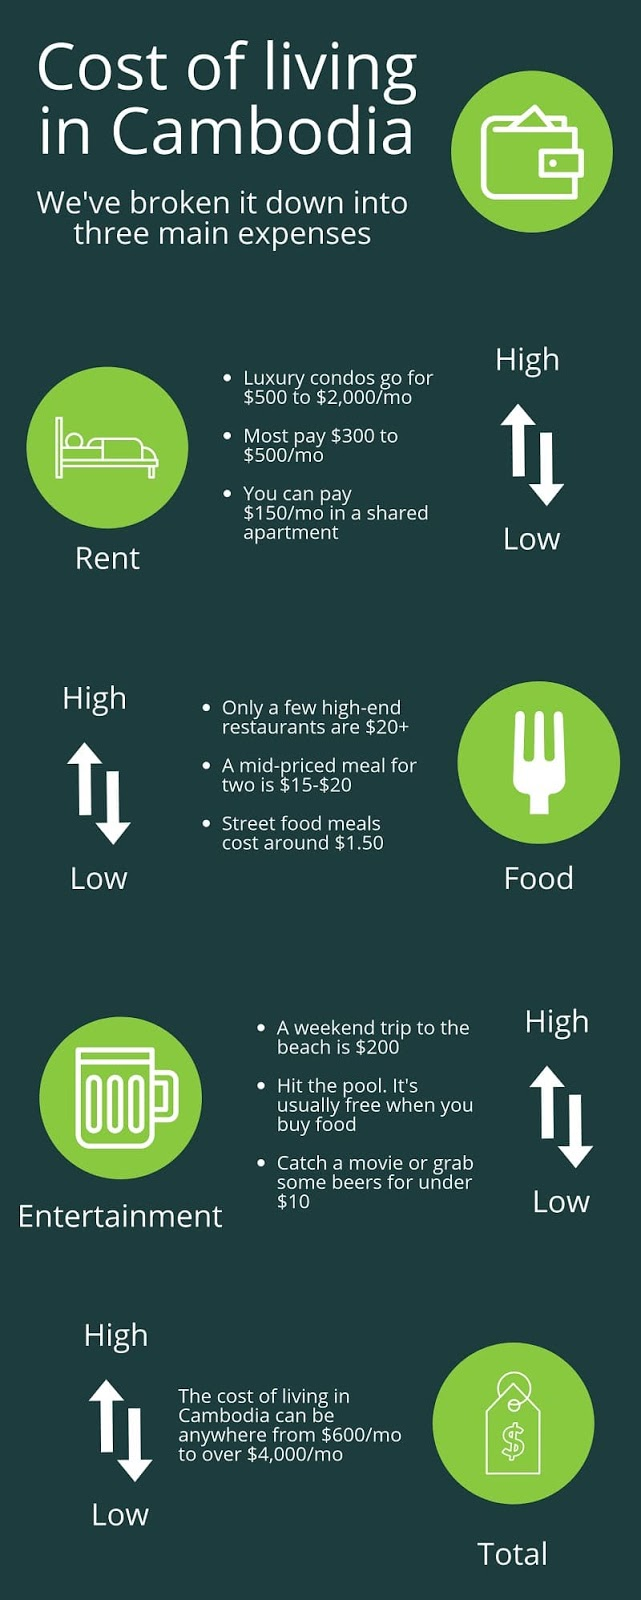 Cost of living in Cambodia infographic